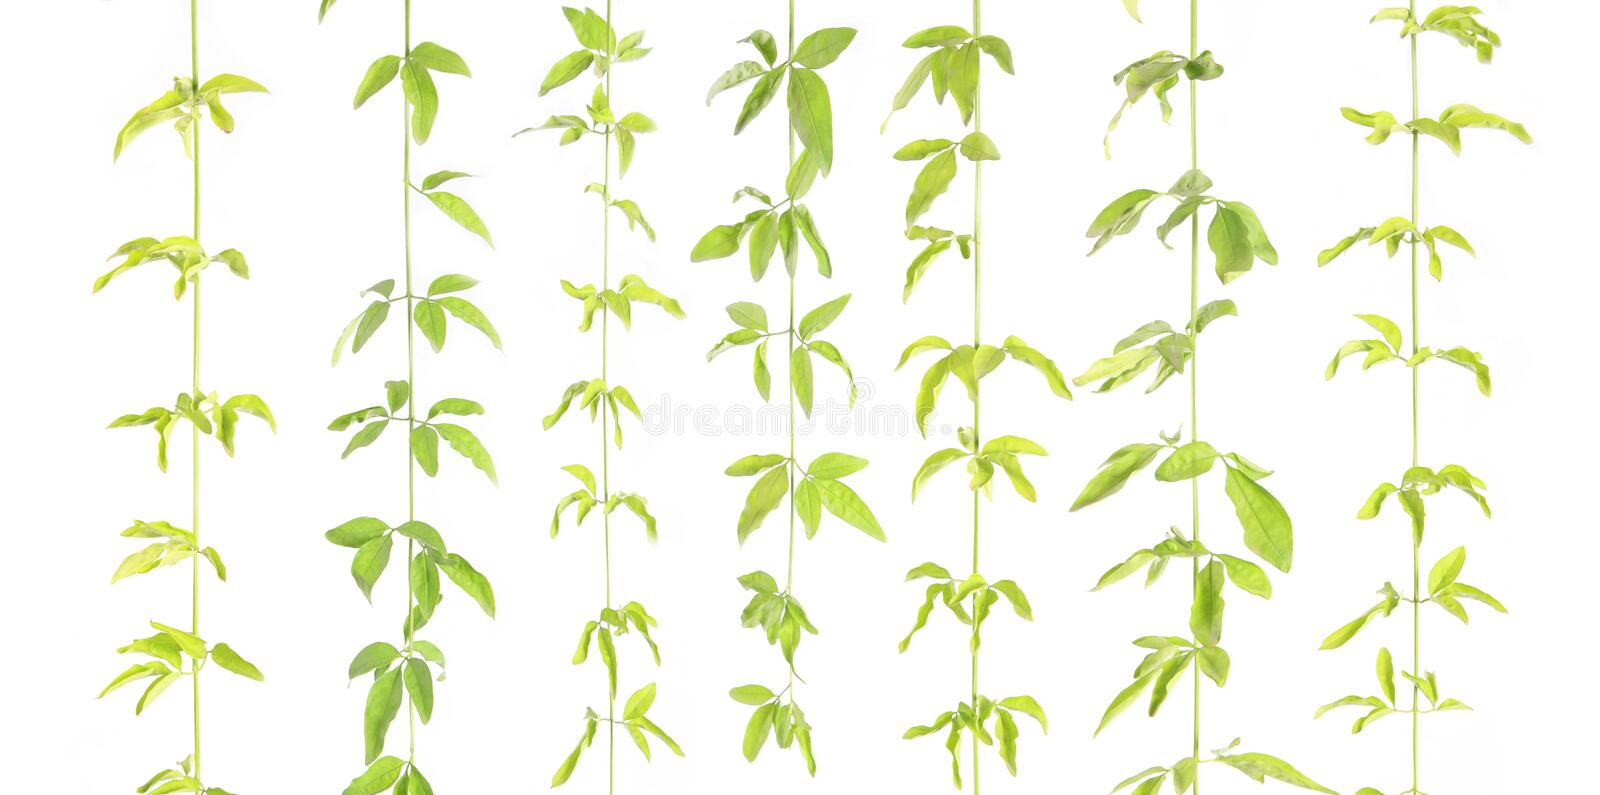 Vertical Vine Royalty Free Stock Image